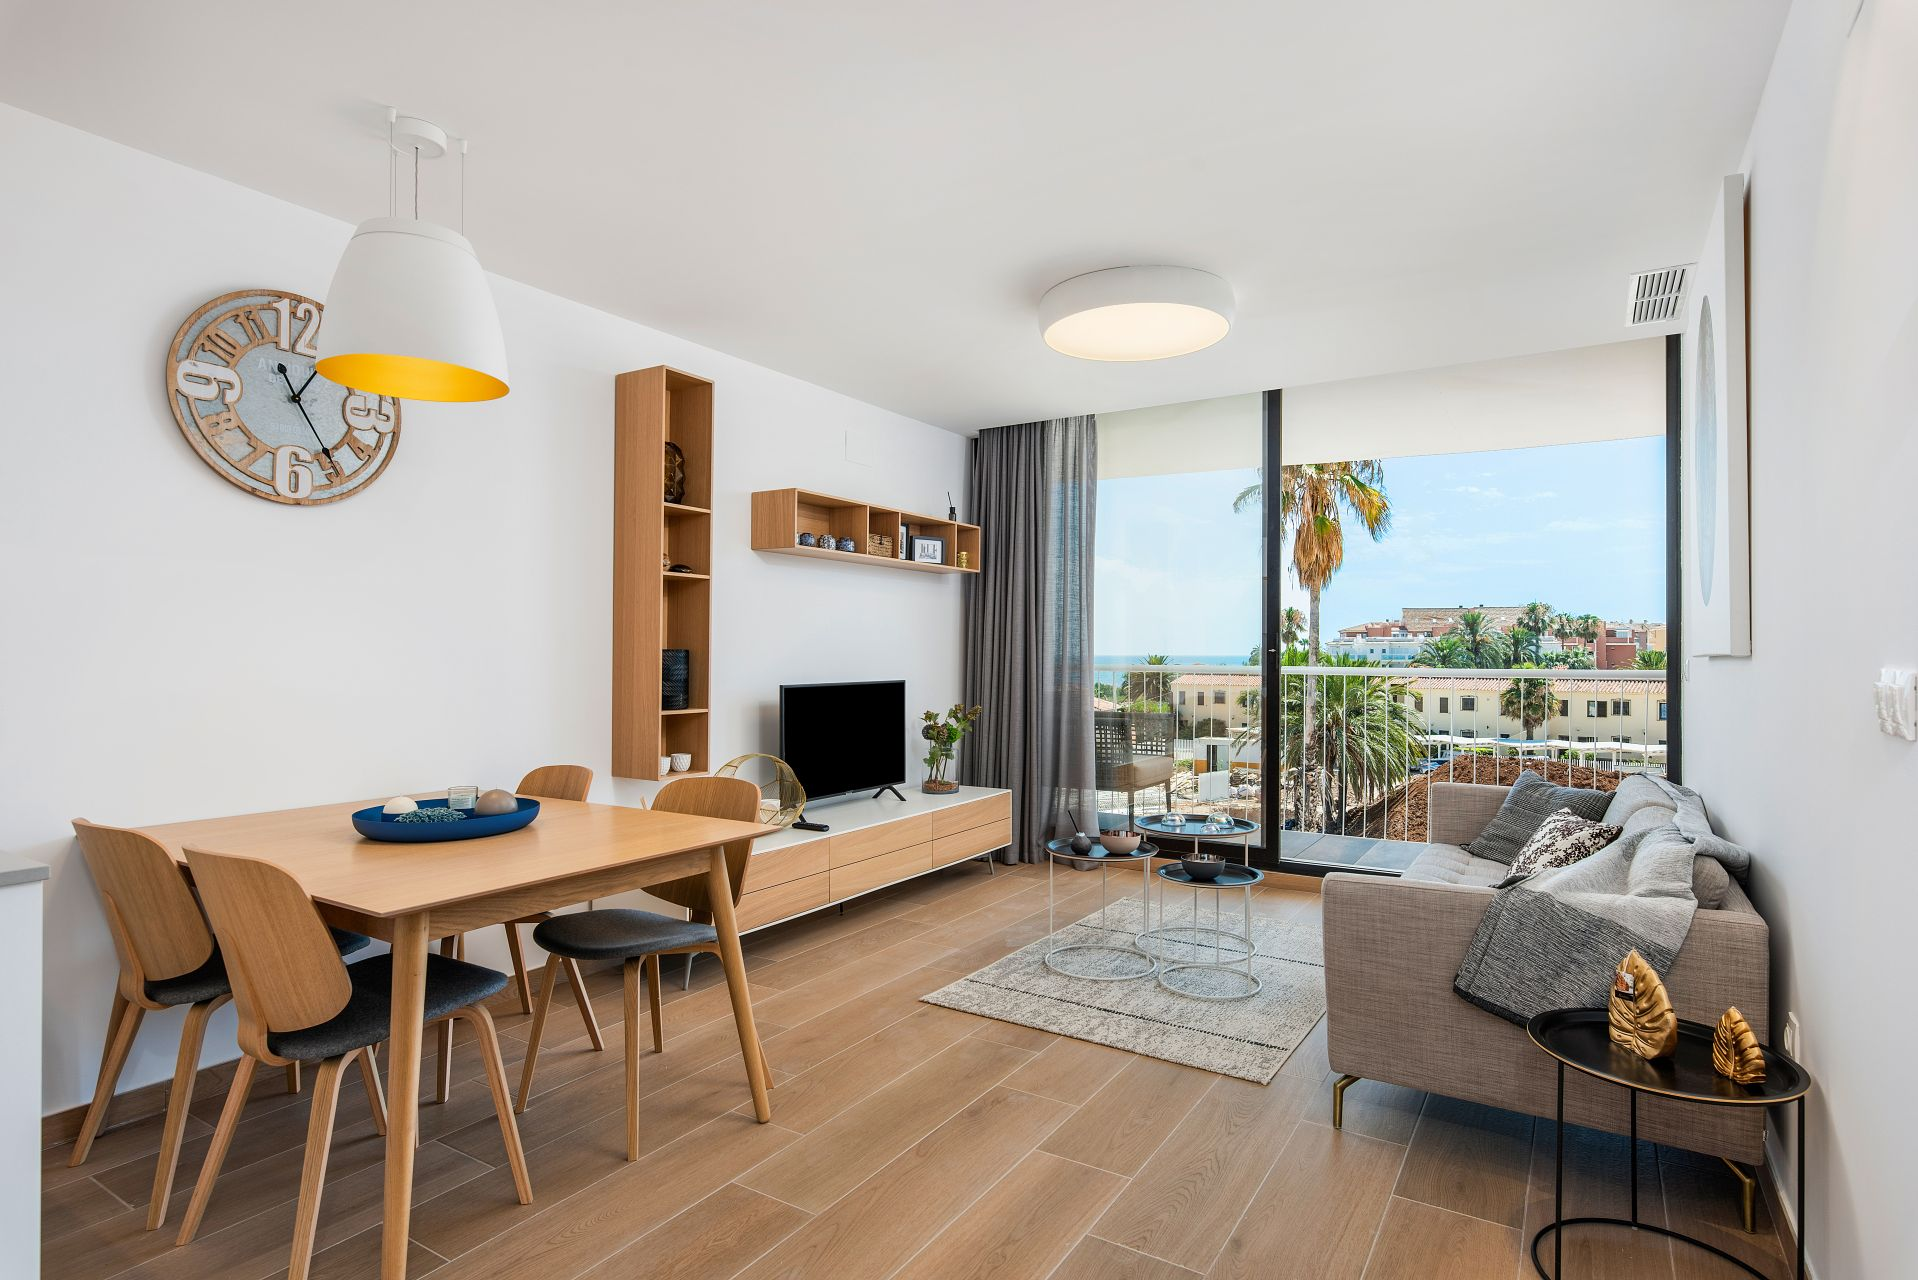 Denia Beach - 1, 2 and 3 bedroom apartments with terrace overlooking the sea or with views over the Montgó mountain, at the beach of La Almadraba beach 33